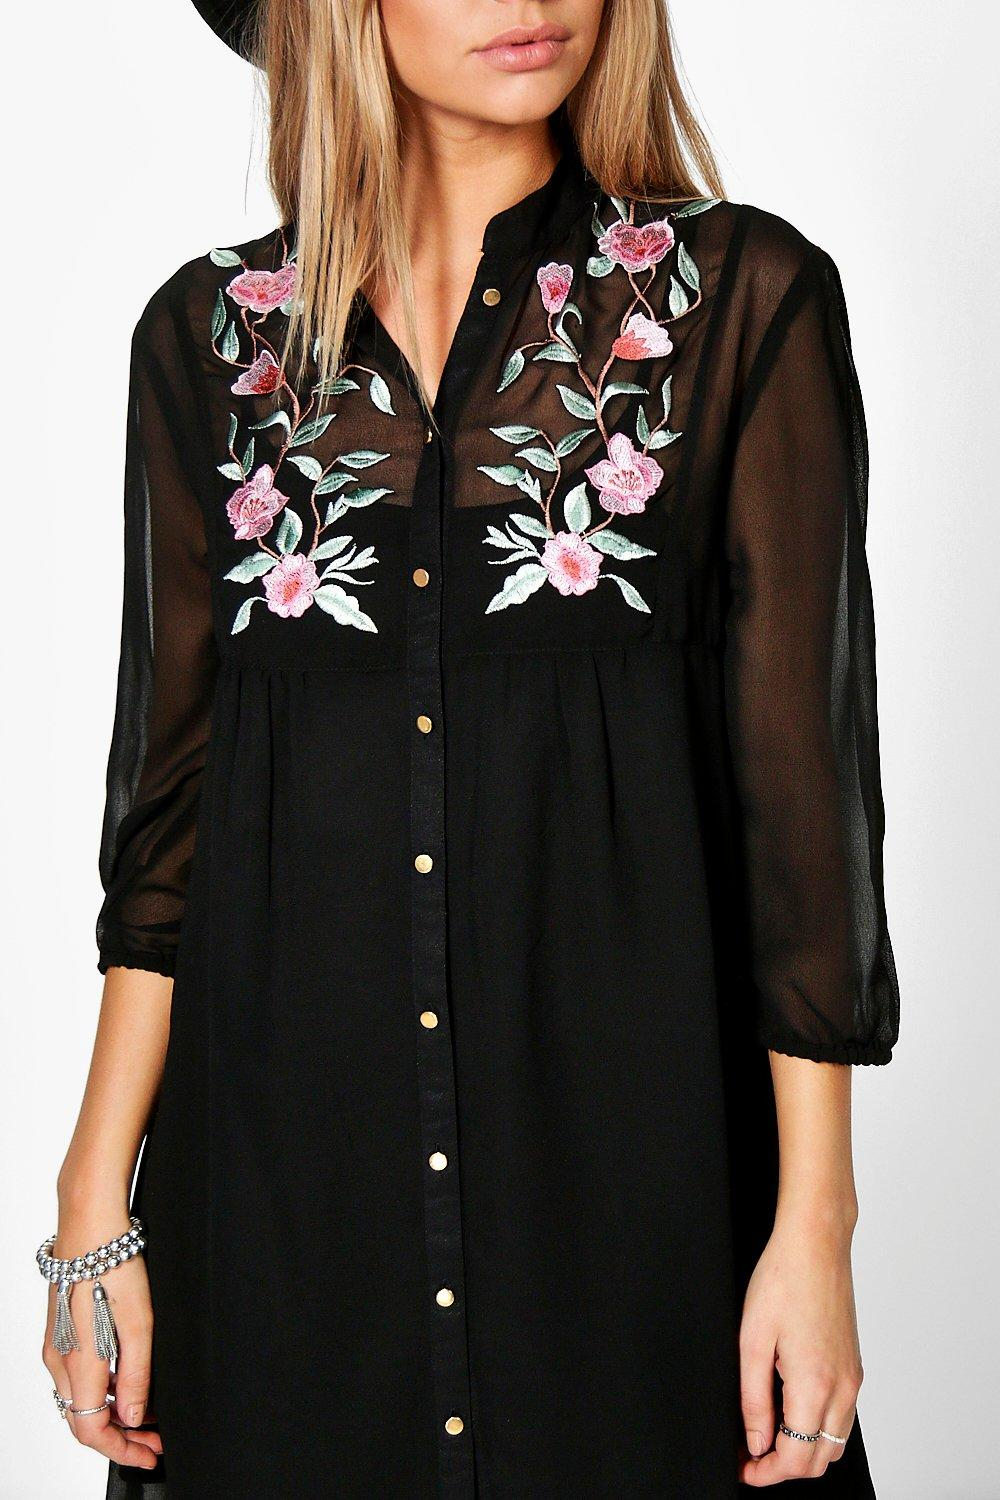 Boohoo Womens Boutique Erin Floral Embroidered Shirt Dress